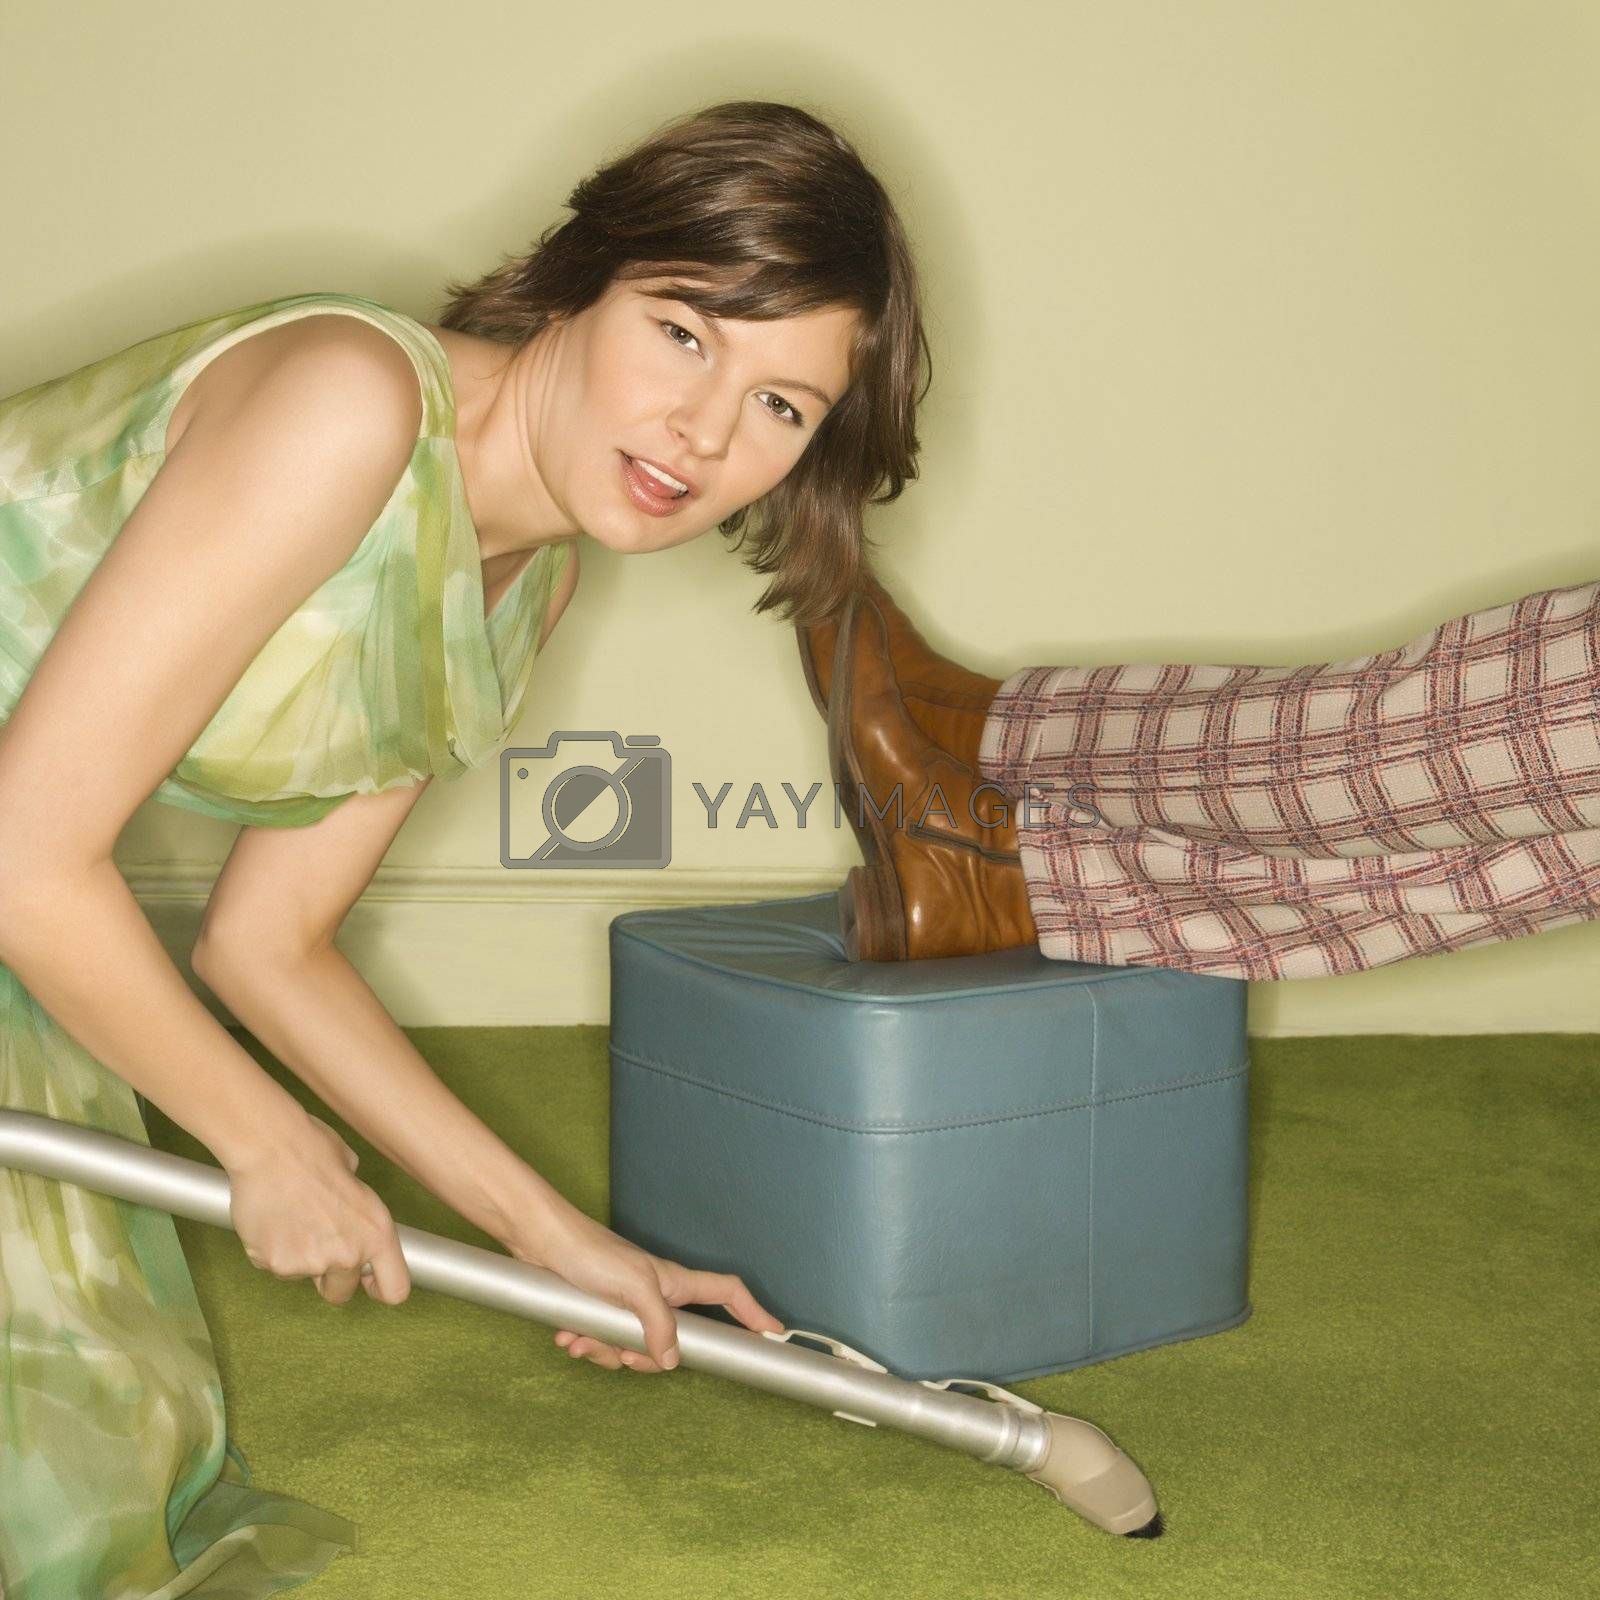 Unhappy pretty Caucasian mid-adult woman kneeling and vaccuuming carpet around male feet resting on foot stool.